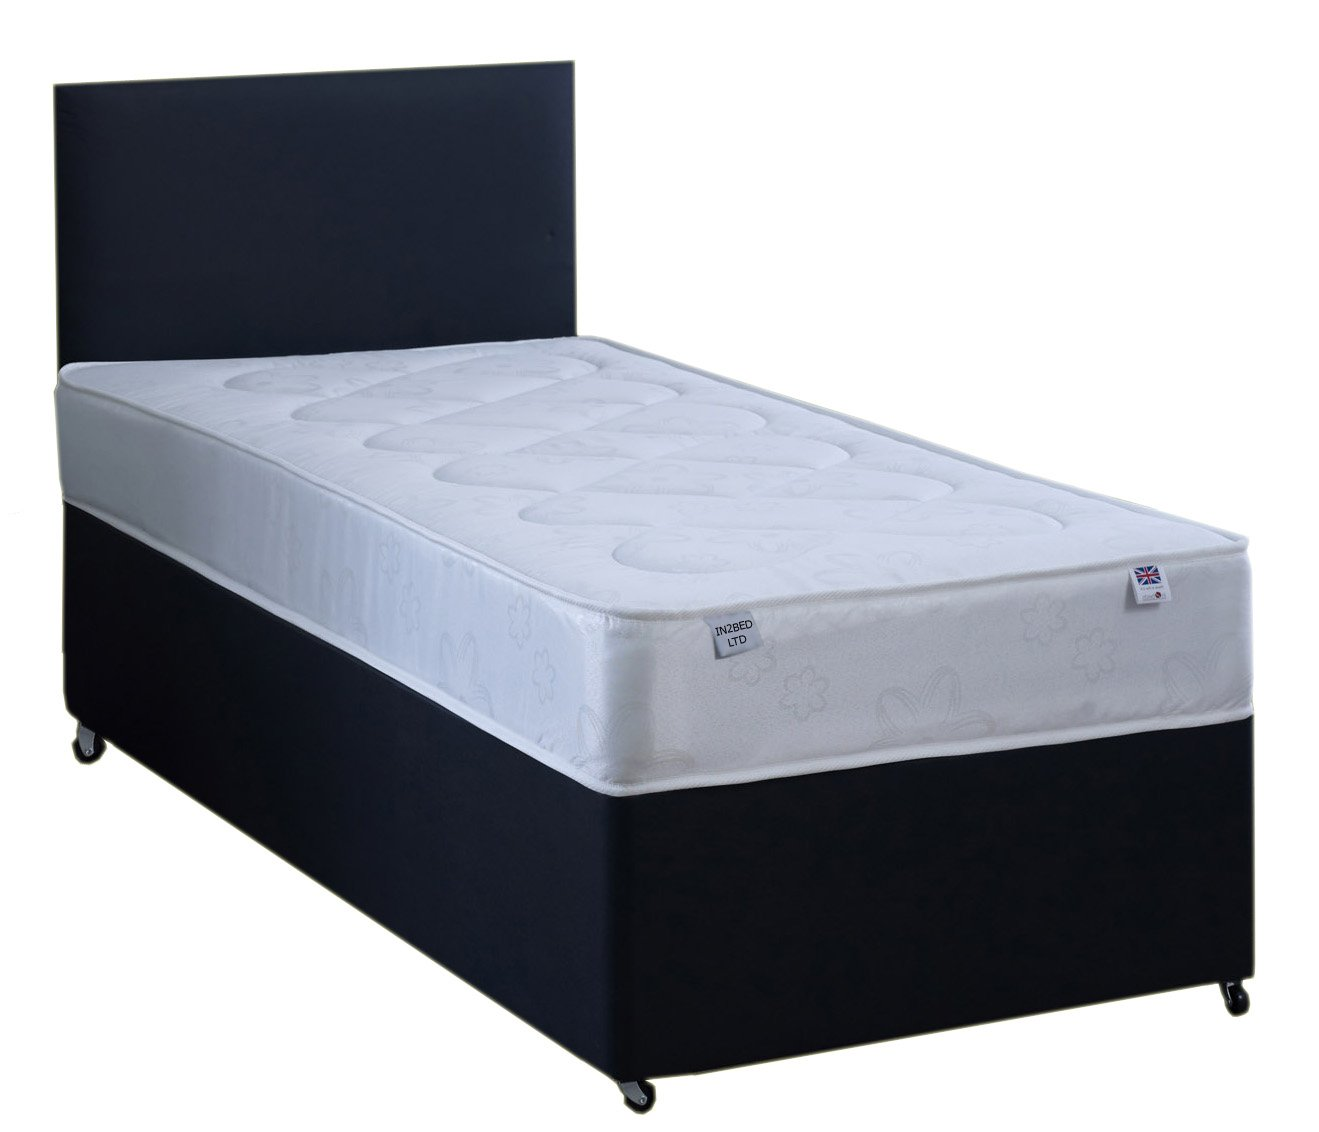 3FT Single Black Faux leather Divan Bed Set Including Deep Quilt Mattress And Headboard In2Bed LTD